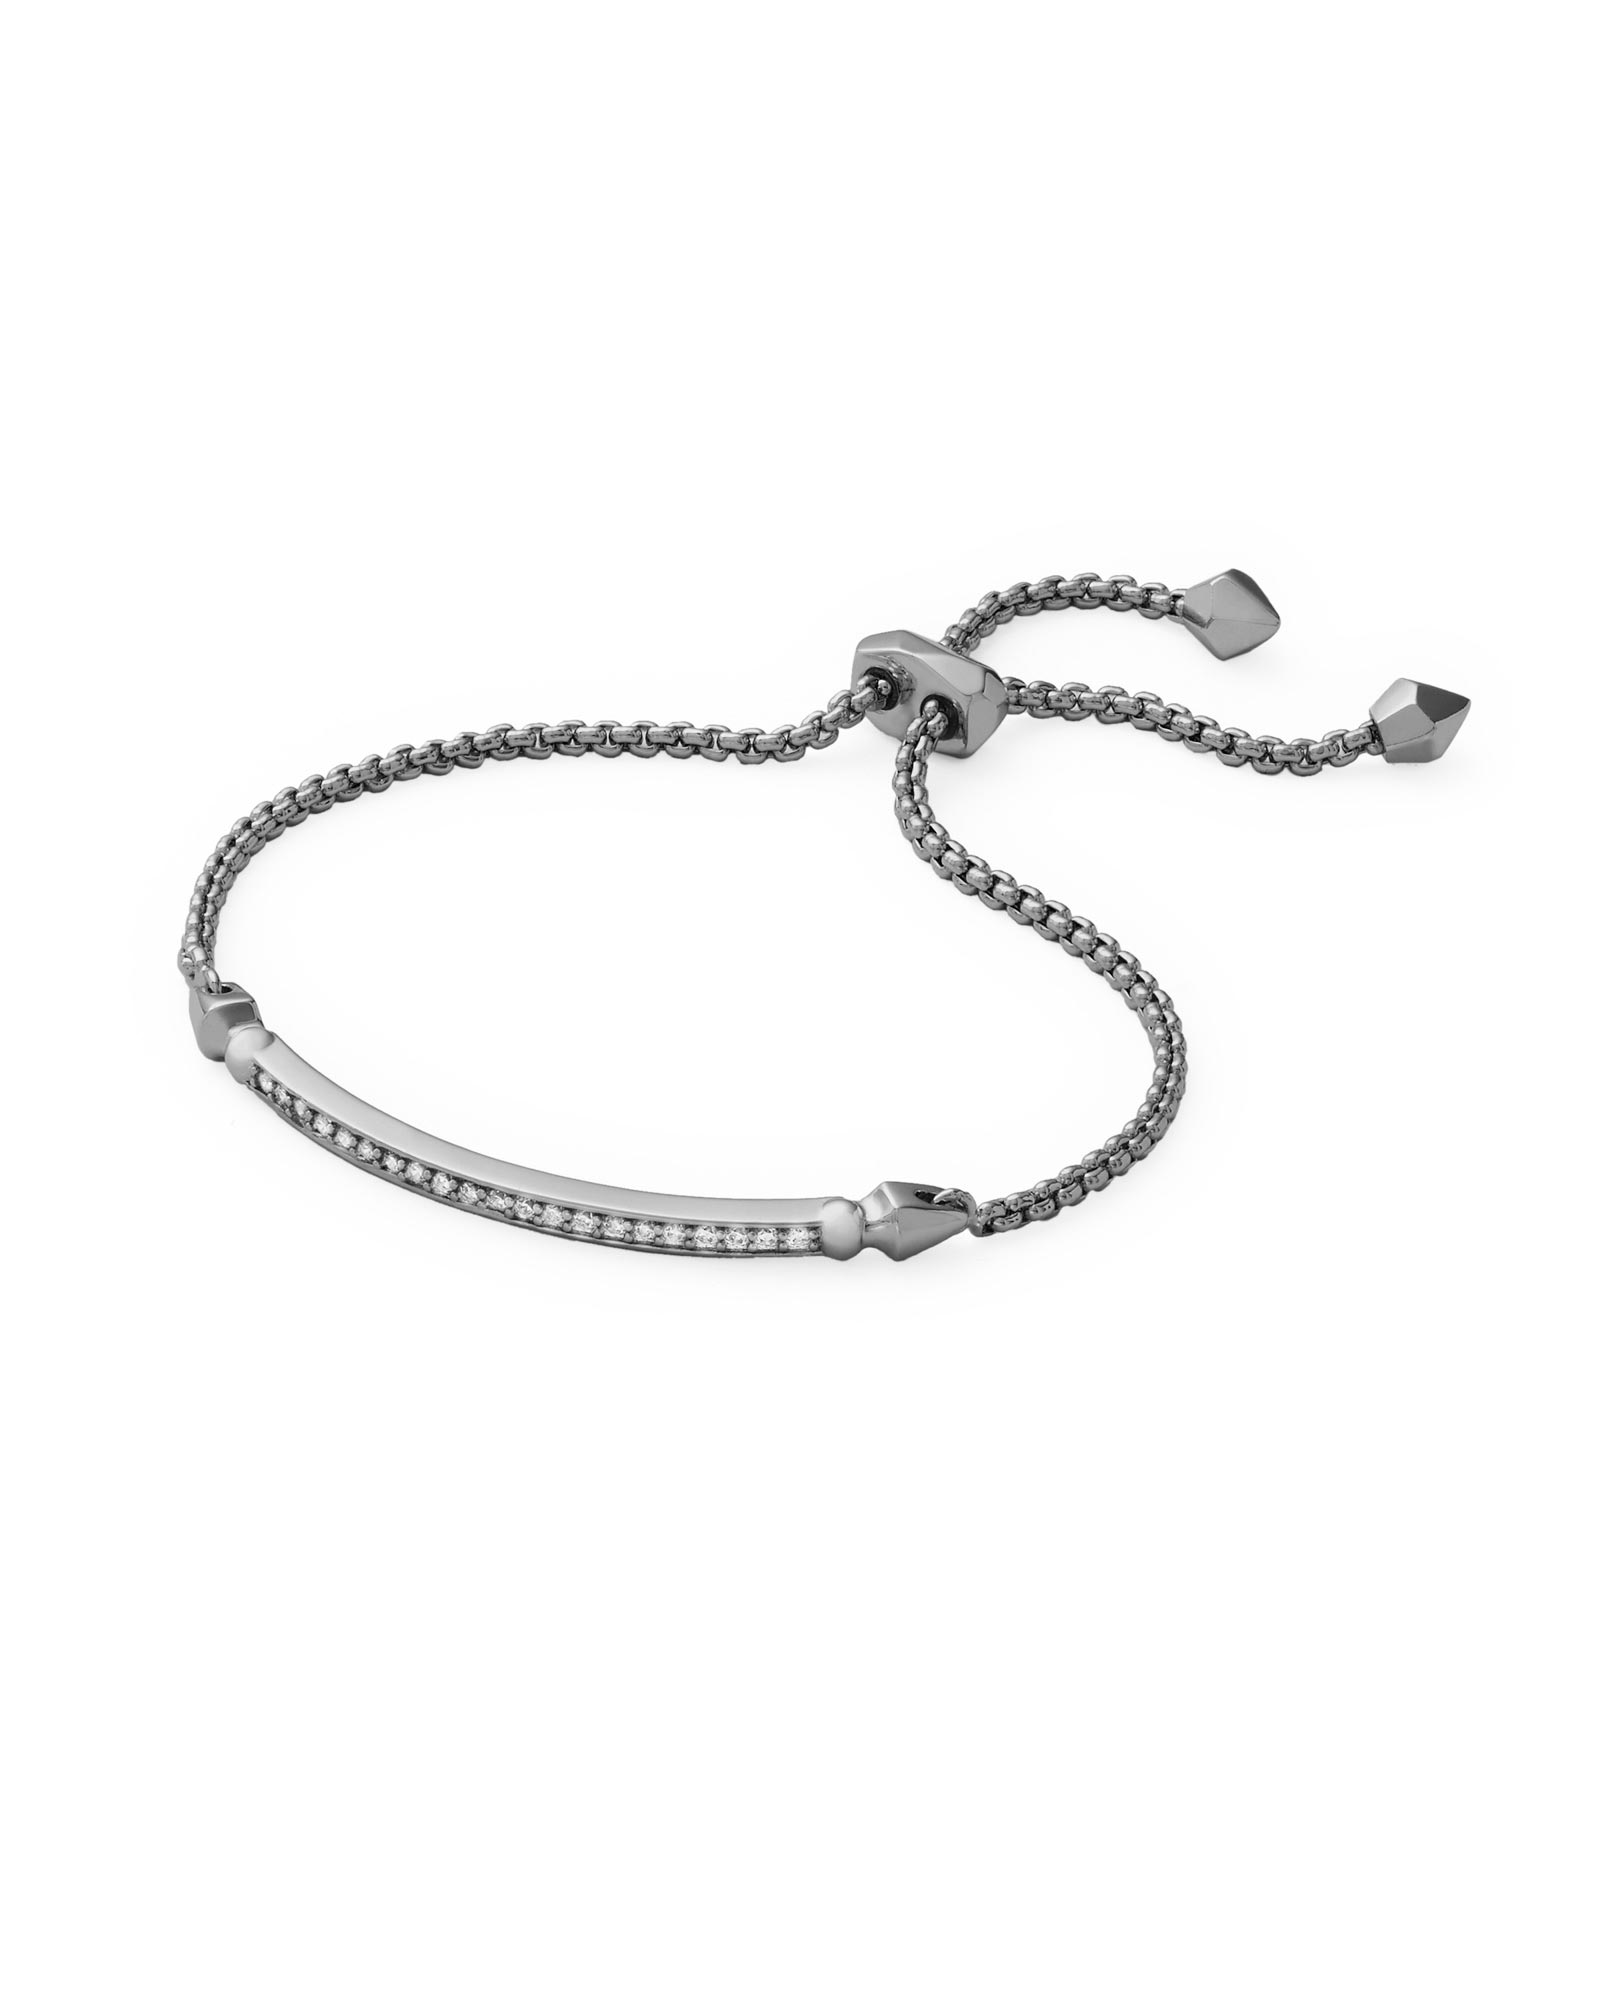 Ott Adjule Bracelet In Hematite Kendra Scott Jewelry